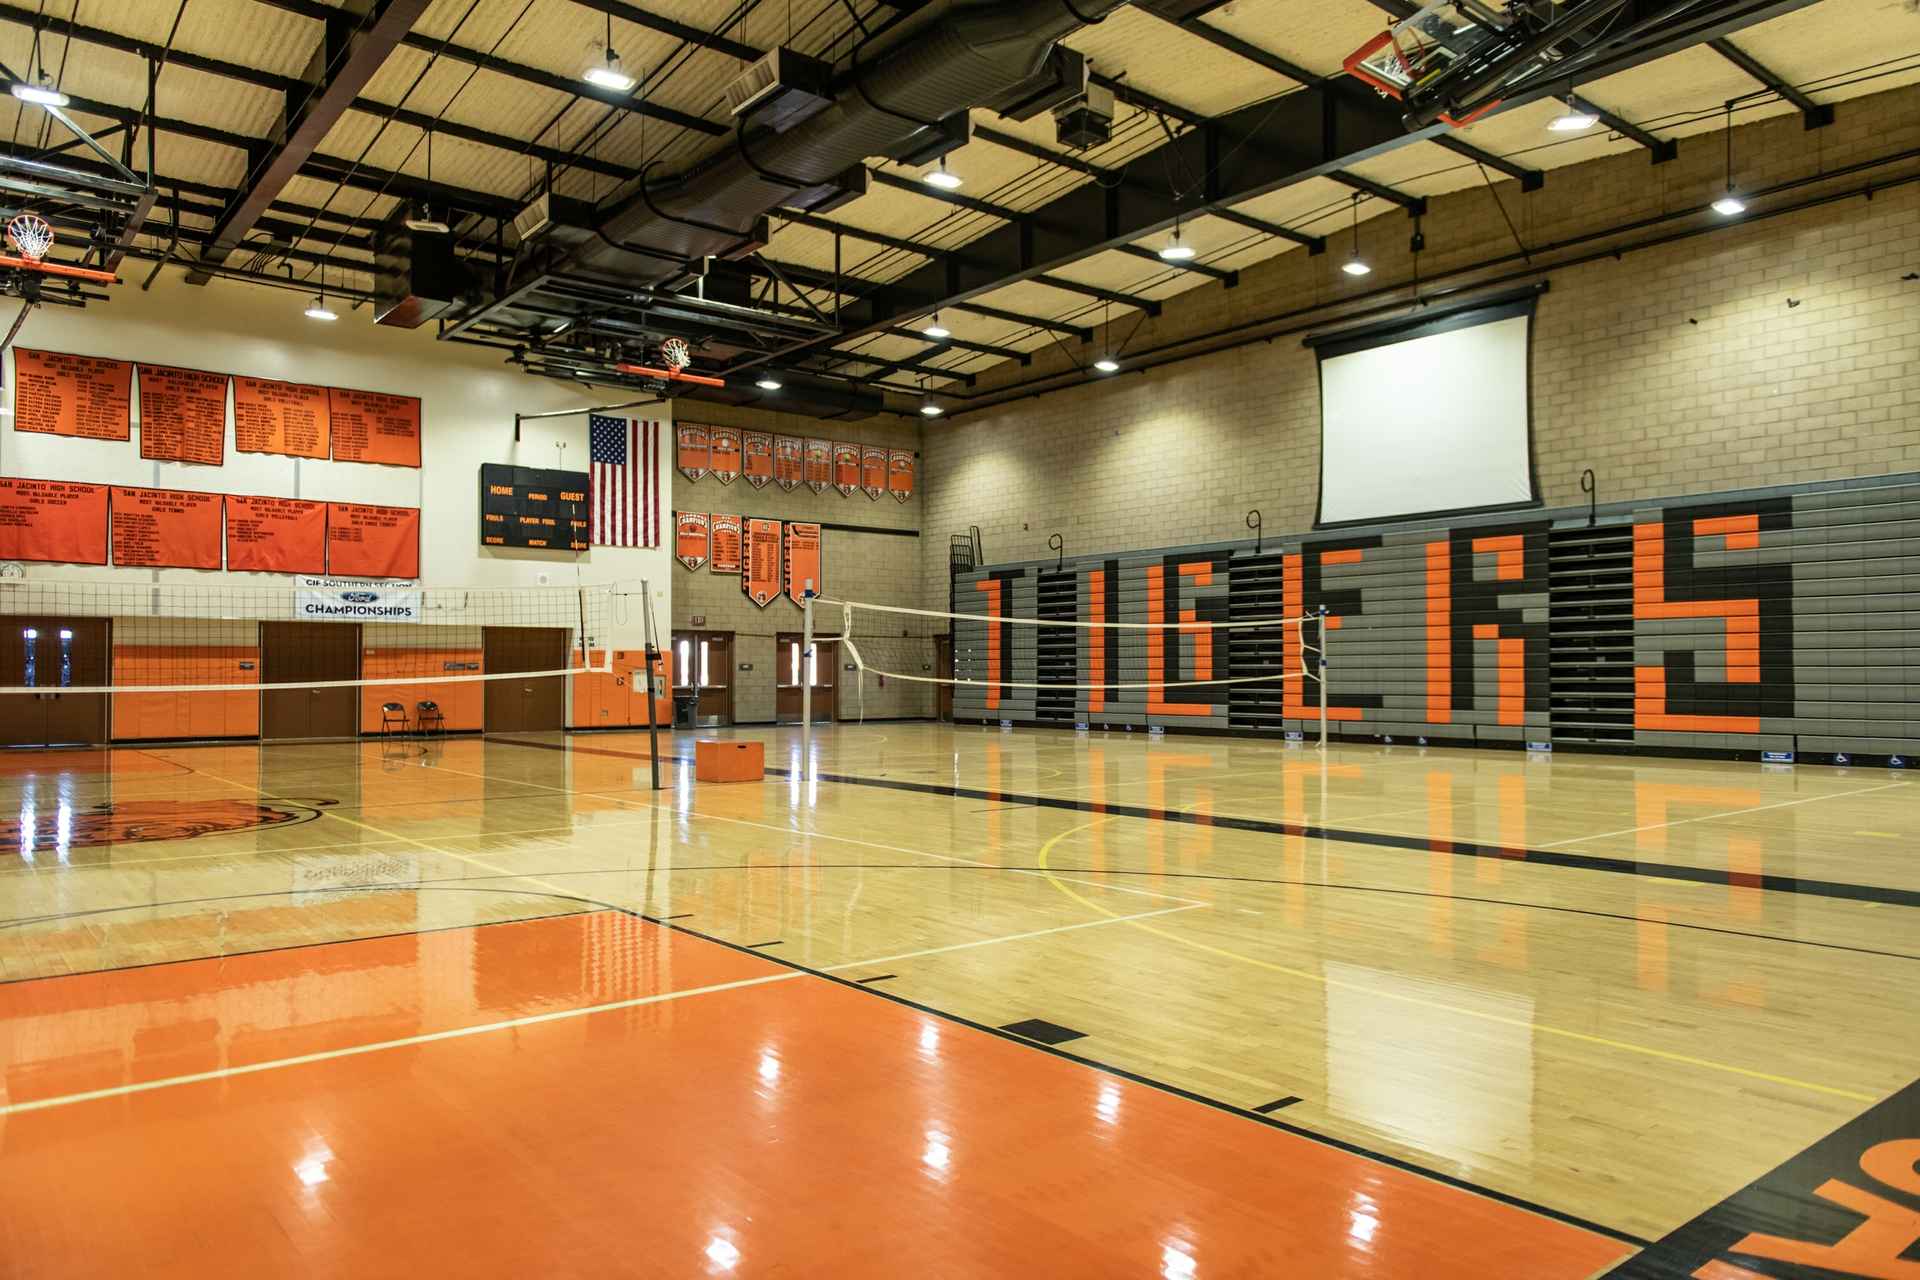 San Jacinto High School's gymnasium would open as a resiliency shelter for the community.